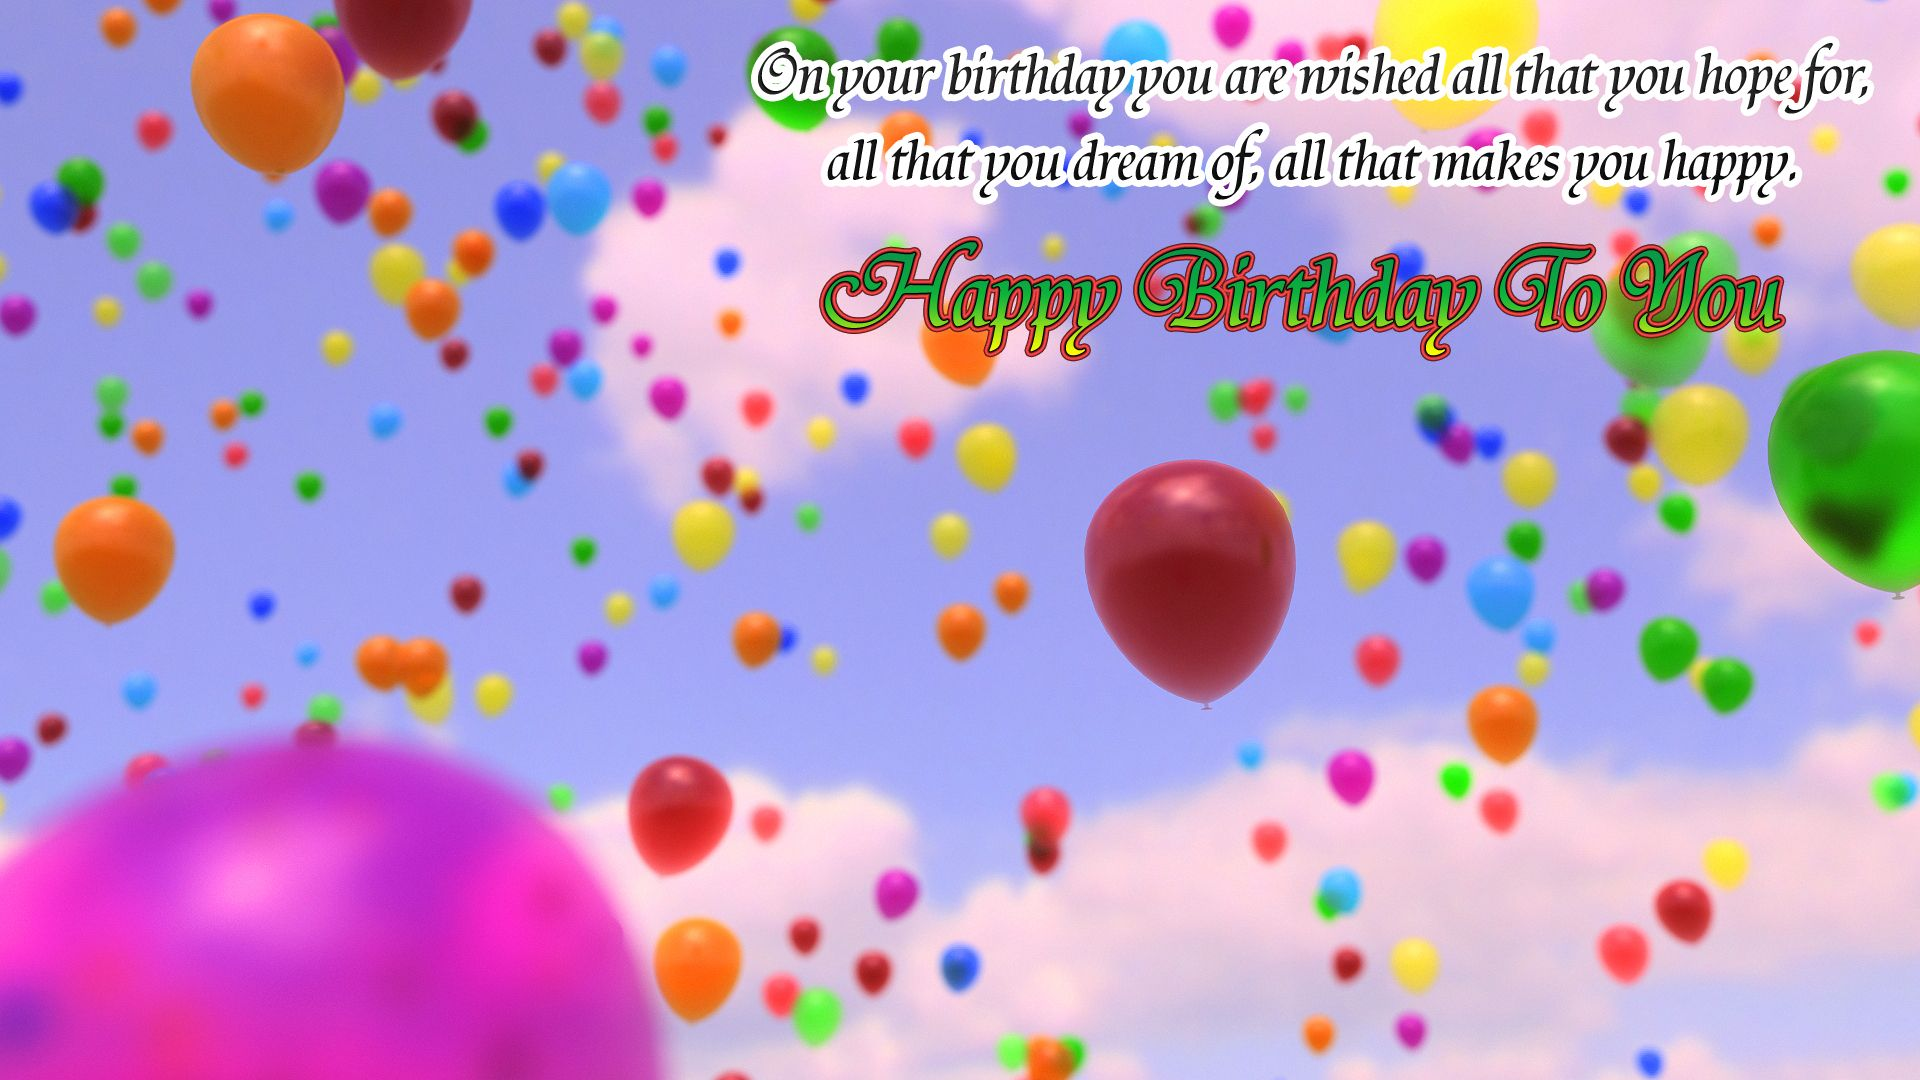 Happy Birthday Wishes Wallpapers Find best latest Happy Birthday